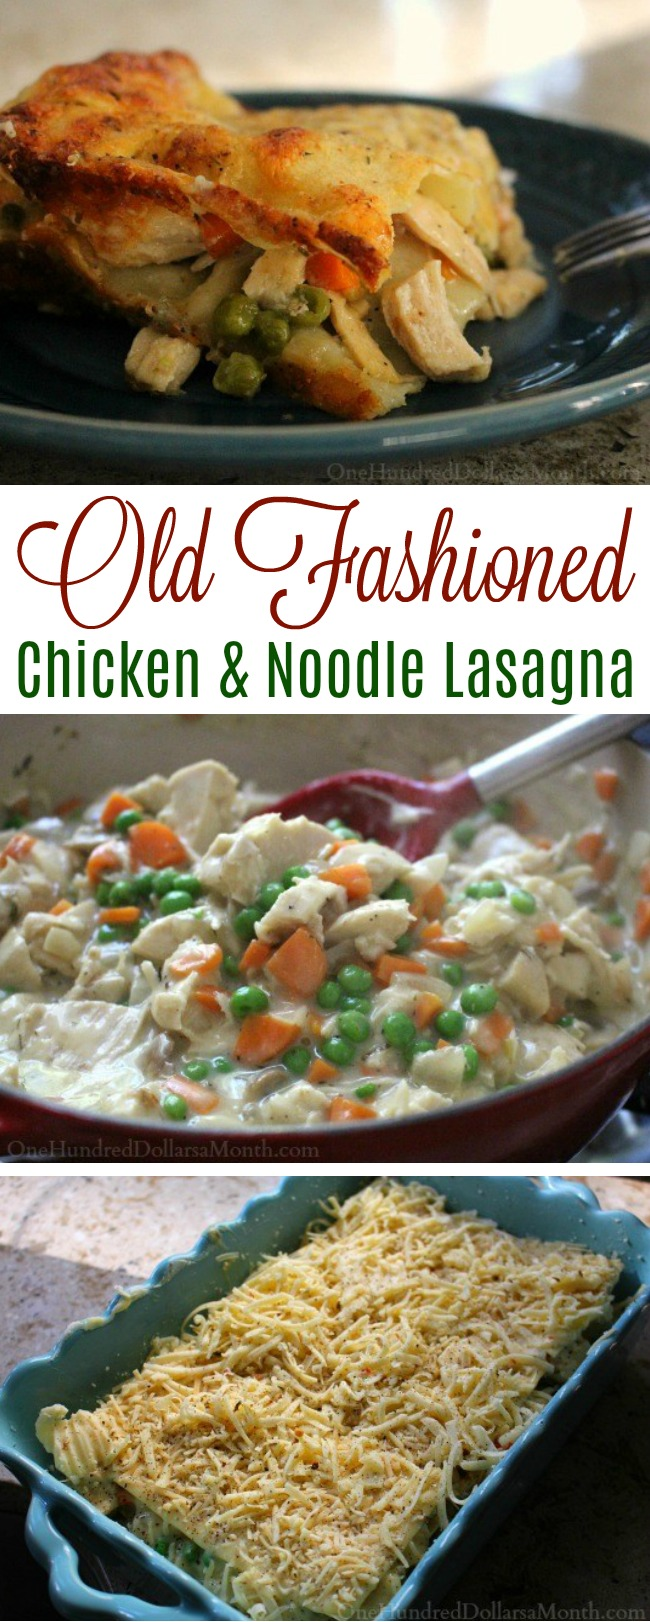 Old Fashioned Chicken and Noodle Lasagna